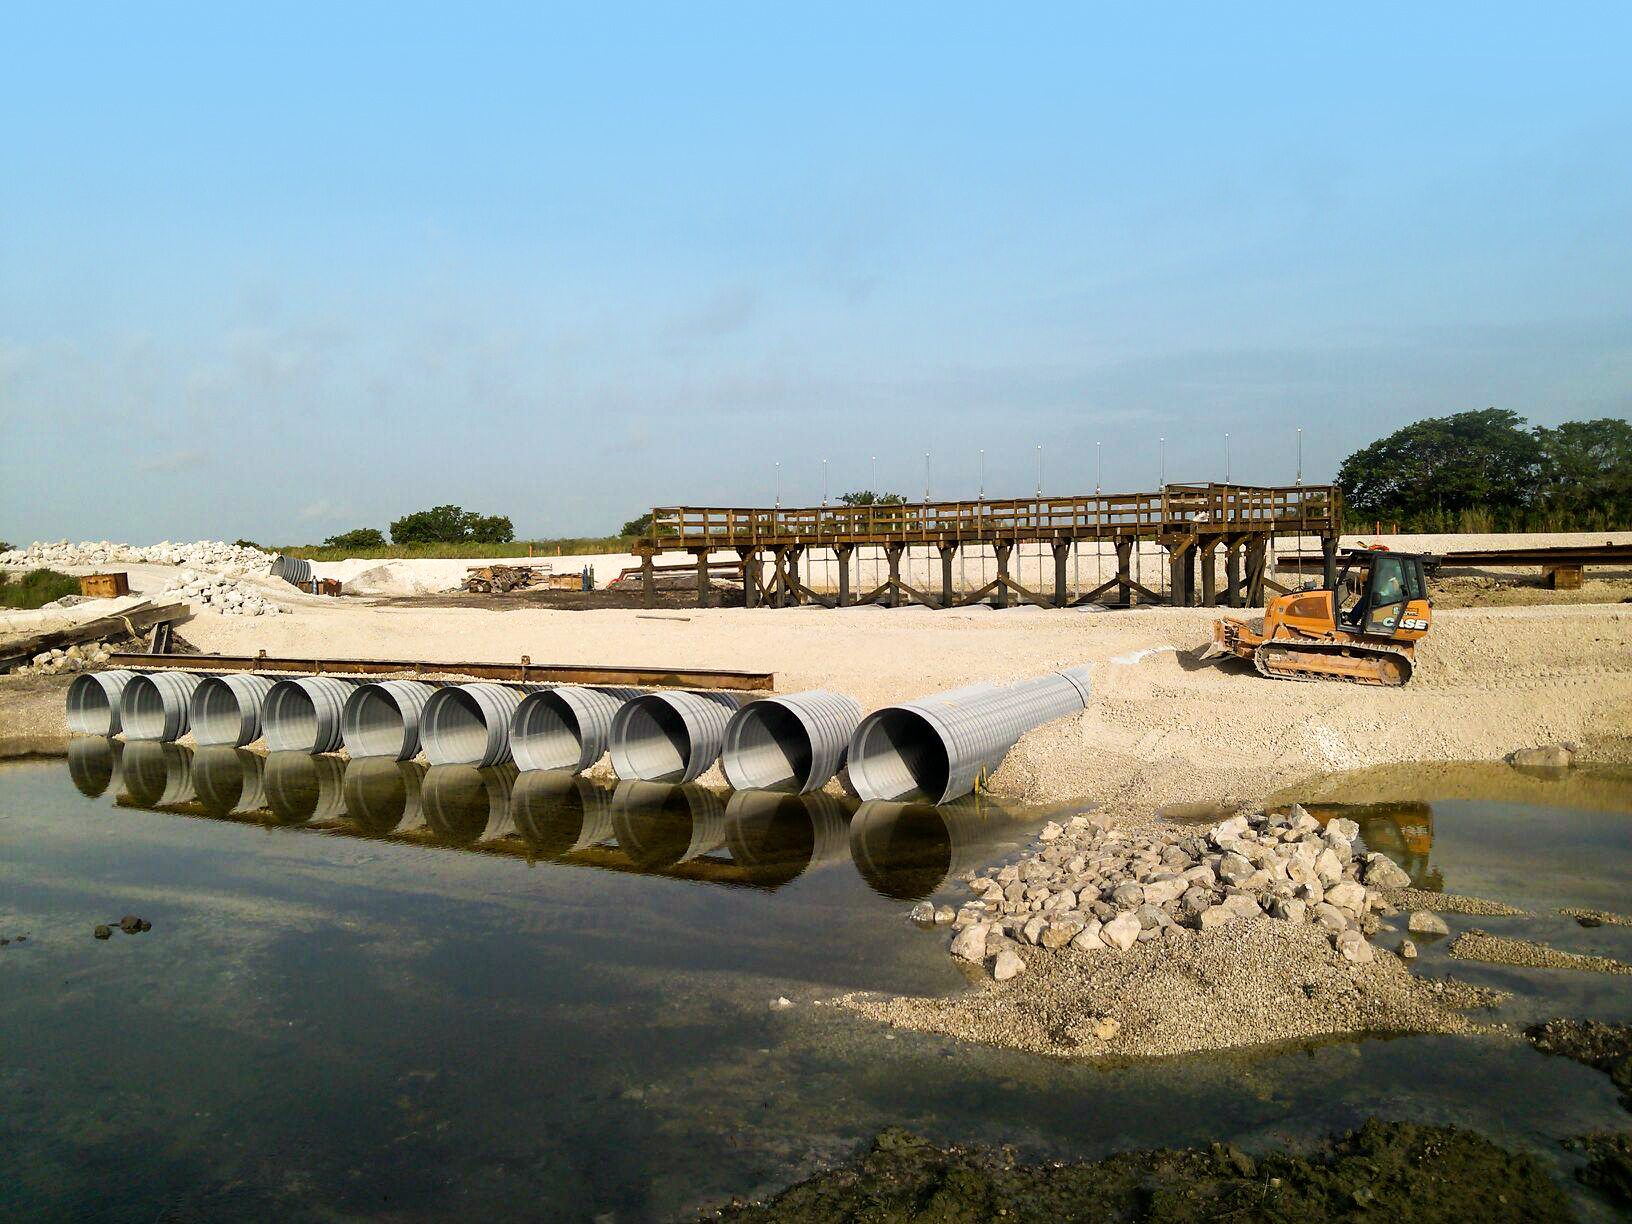 Decompartmentalisation & Sheetflow Enhancement of Water Conservation – USA - pipeline installation